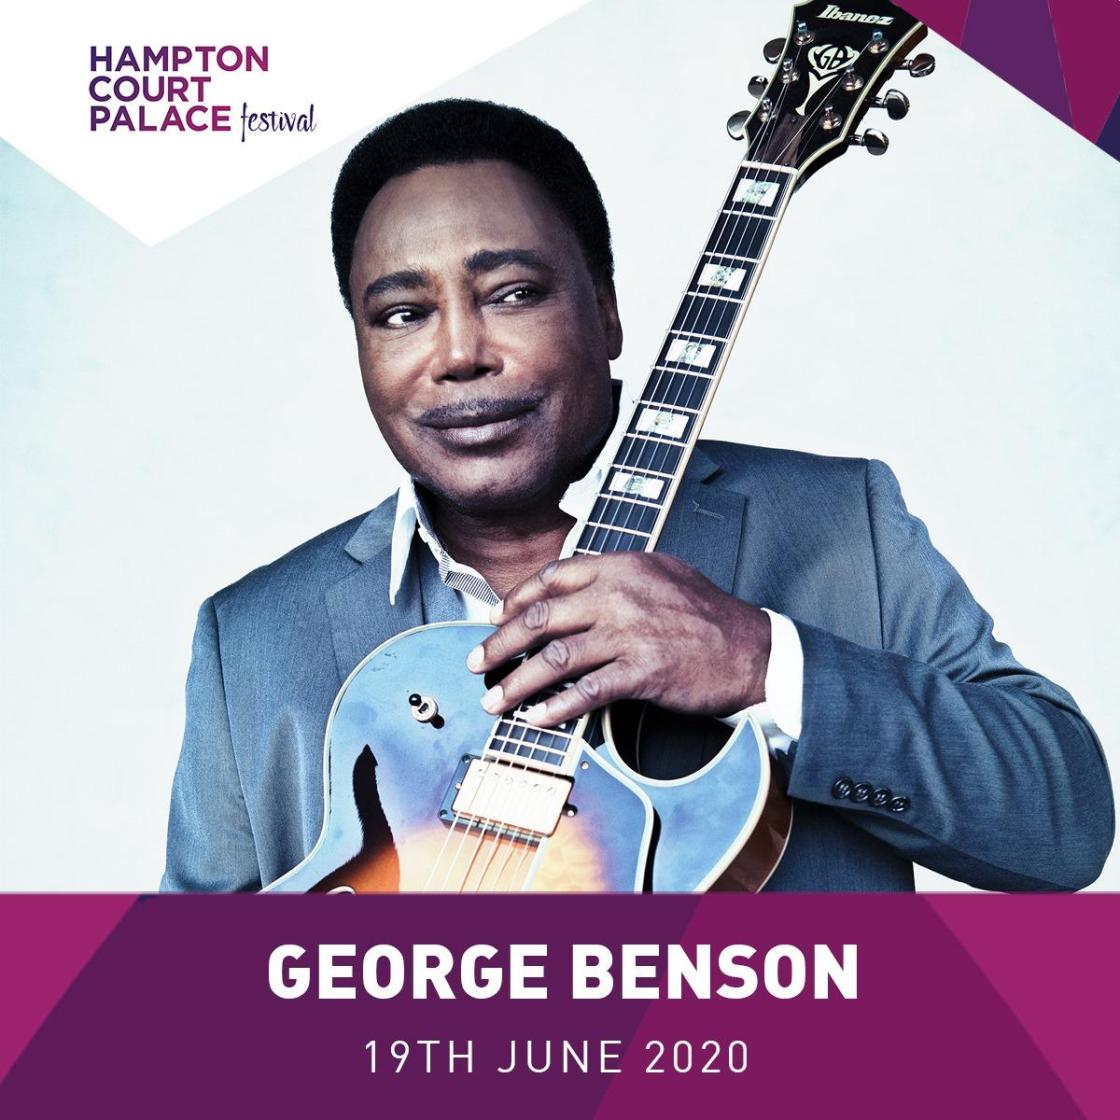 Hampton Court Palace Festival tickets for George Benson on 19th June 2020 are no...